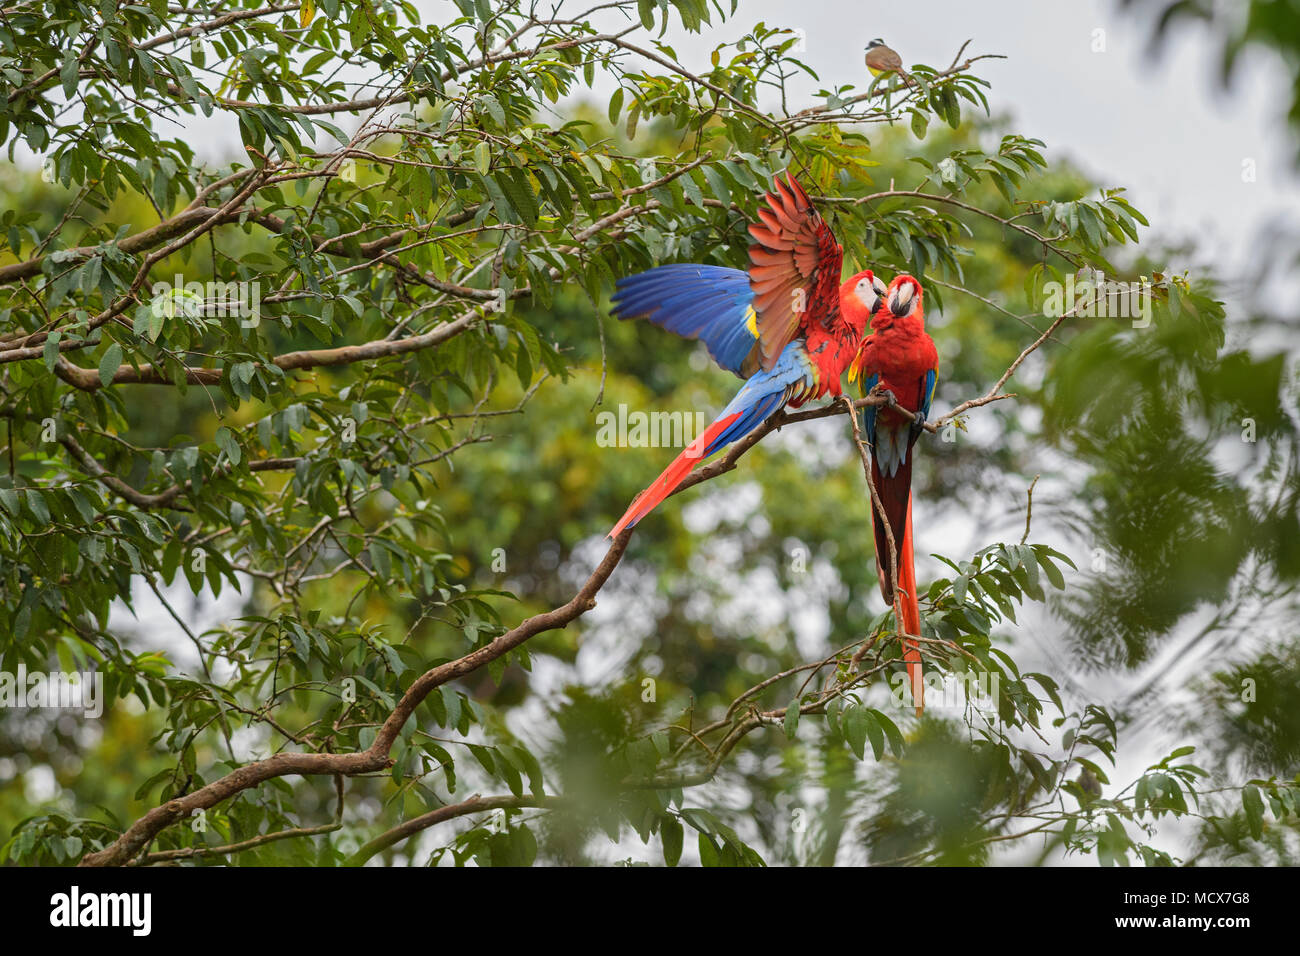 Scarlet Macaw - Ara macao, large beautiful colorful parrot from Central America forests, Costa Rica. - Stock Image